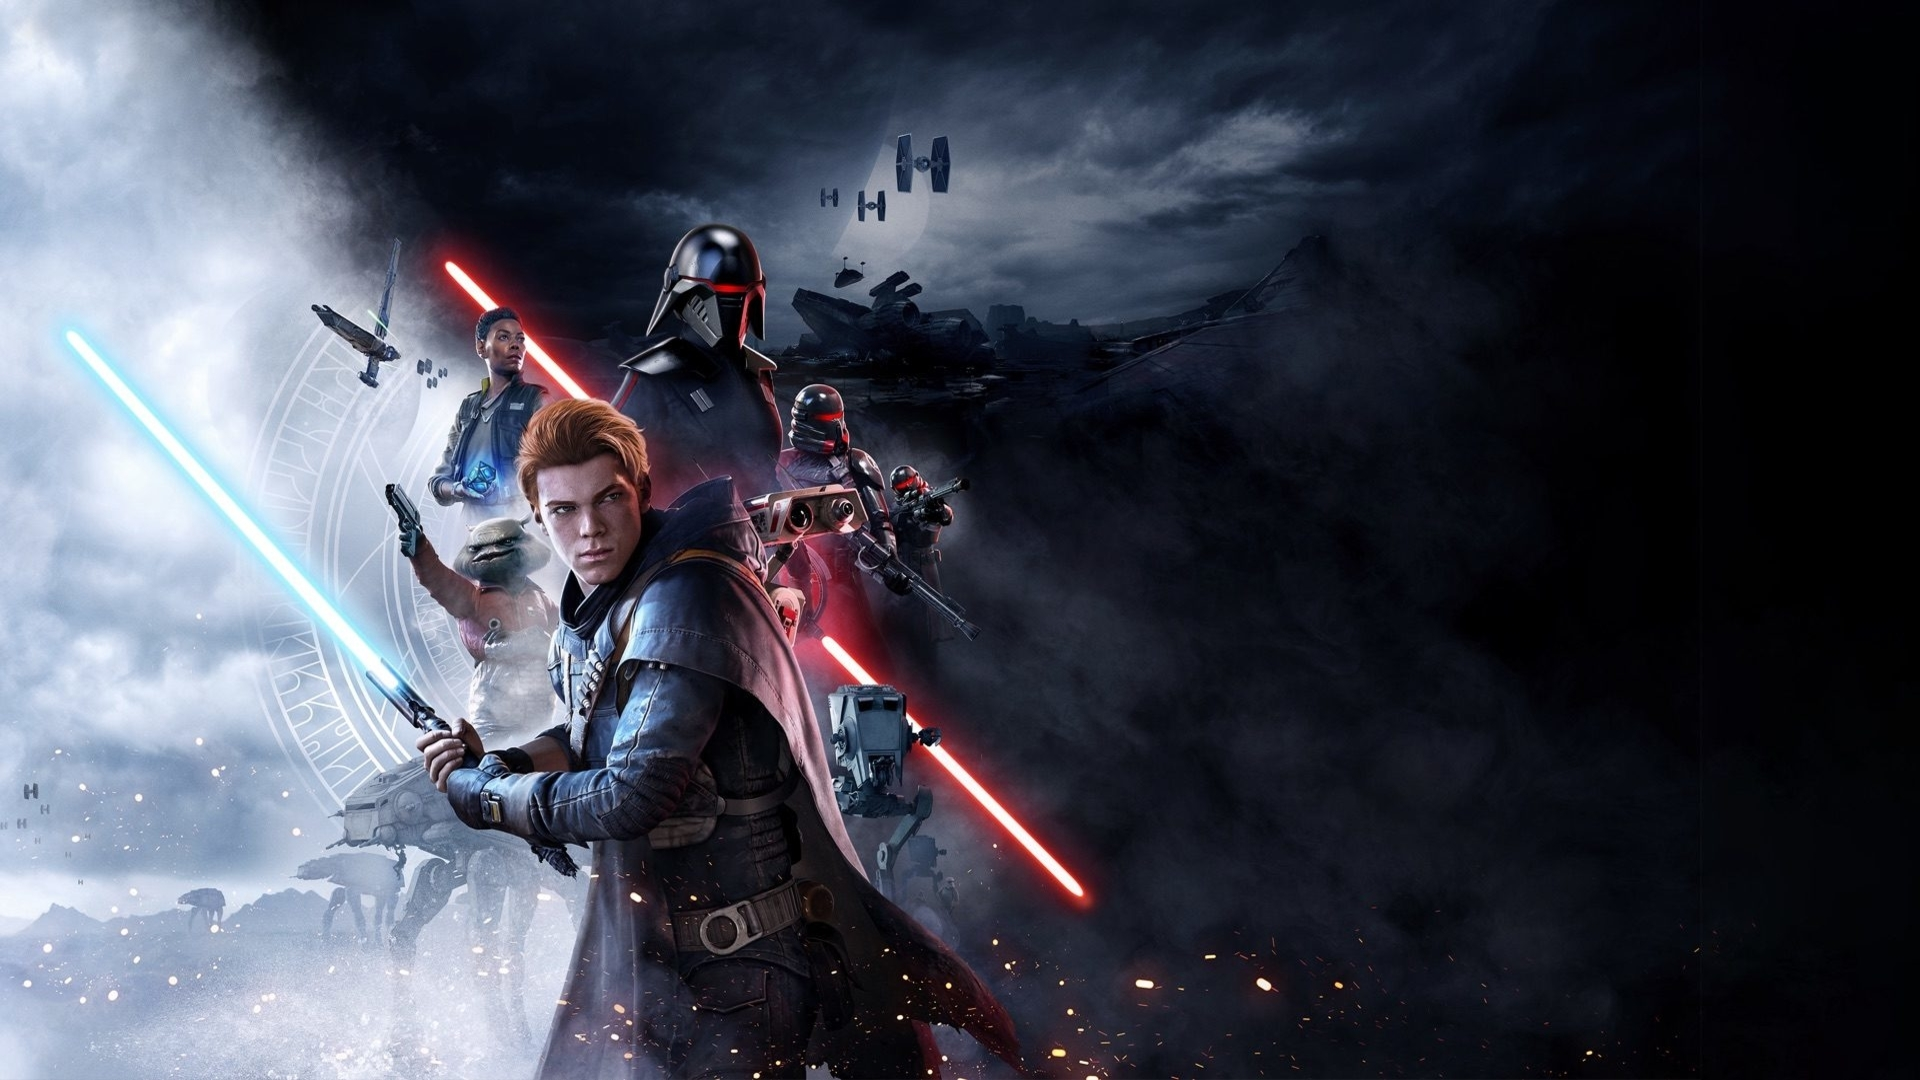 Star Wars Jedi Fallen Order Gameplay Reveal Live From E3